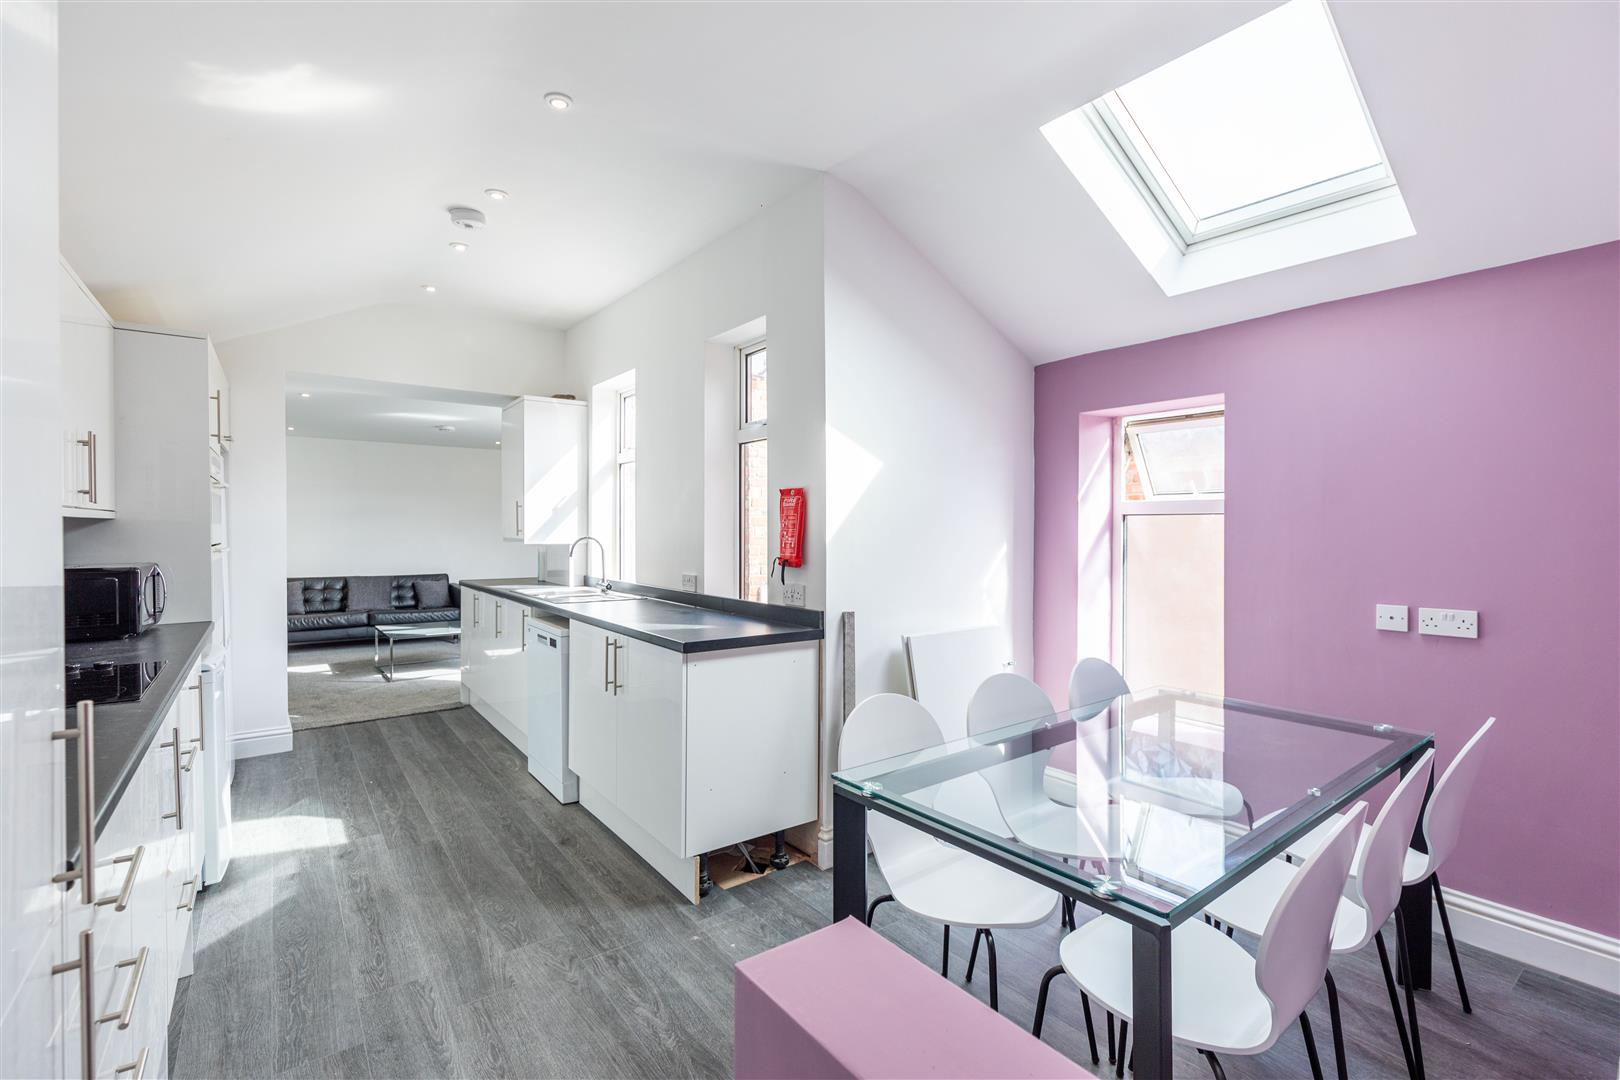 6 bed maisonette to rent in Newcastle Upon Tyne, NE2 3HY  - Property Image 1